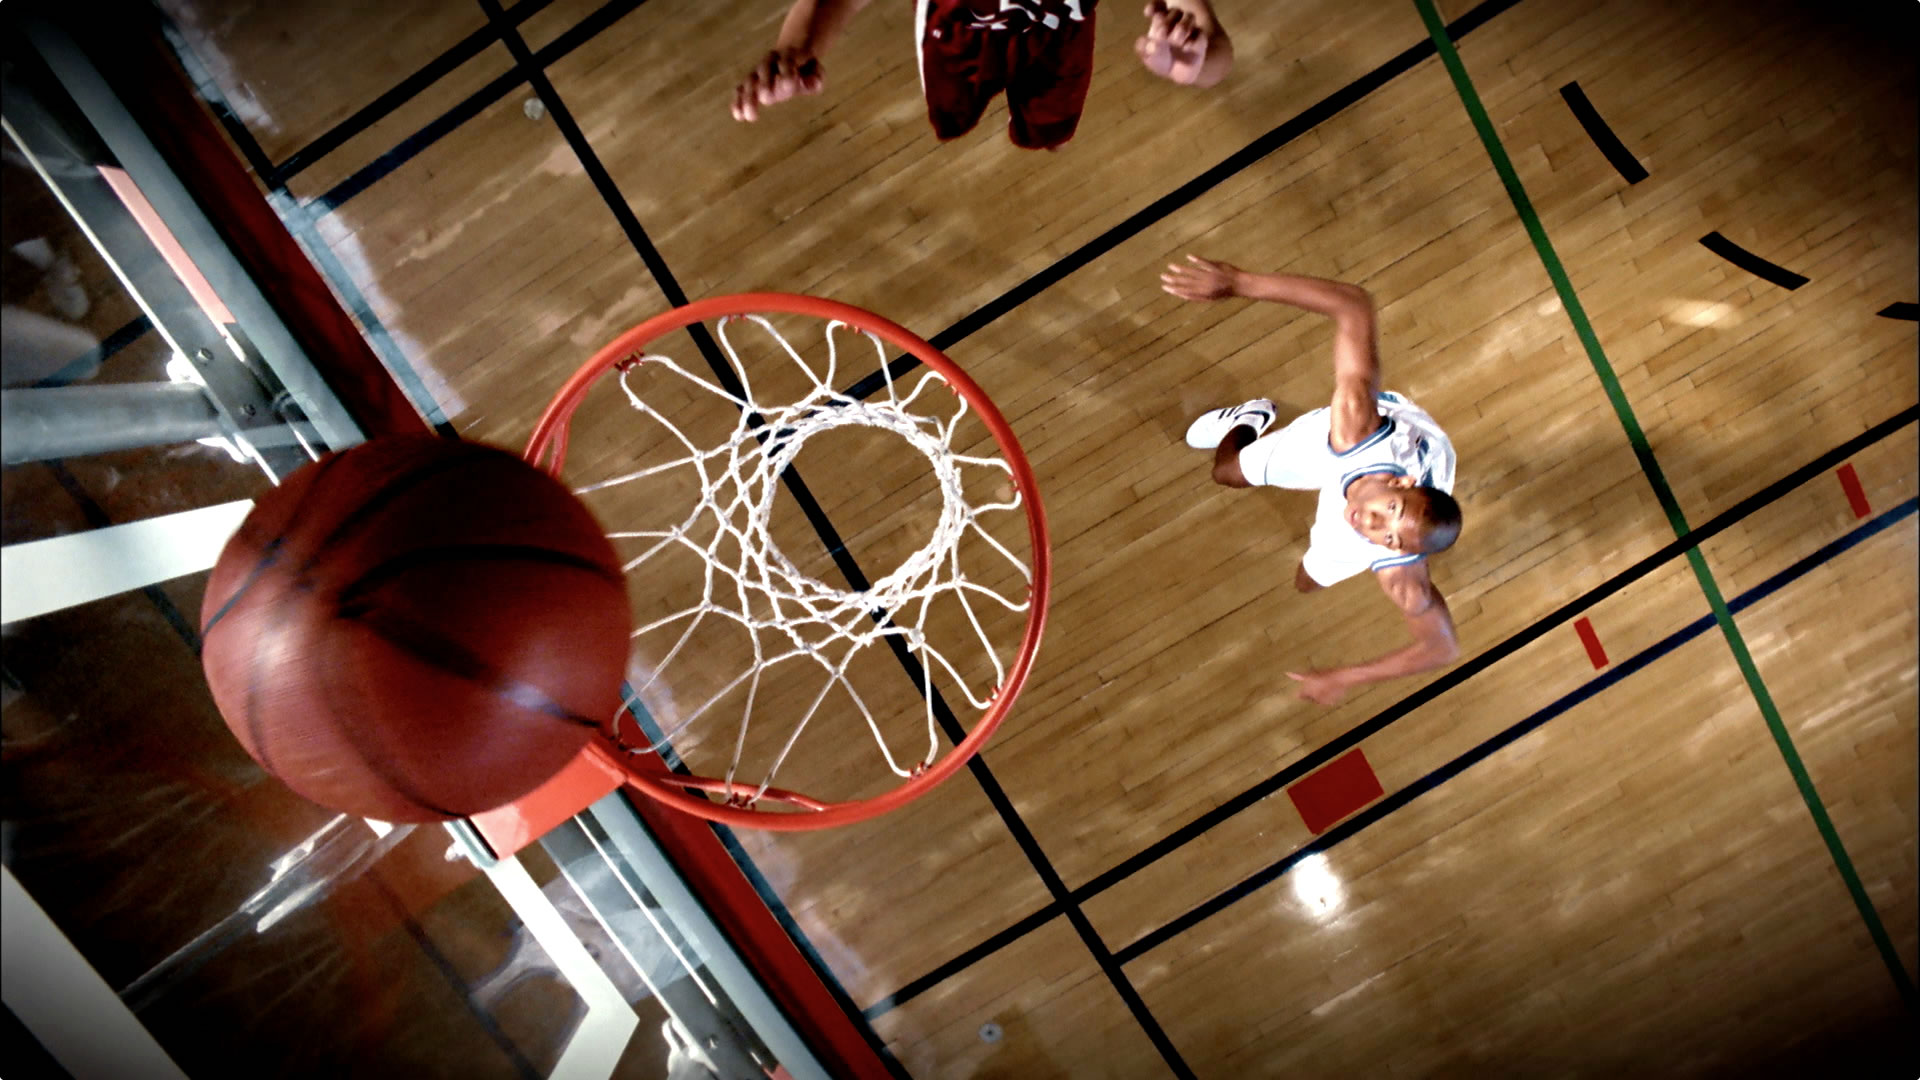 Basketball Skill Training- Improve Your Vertical Jump Exercise